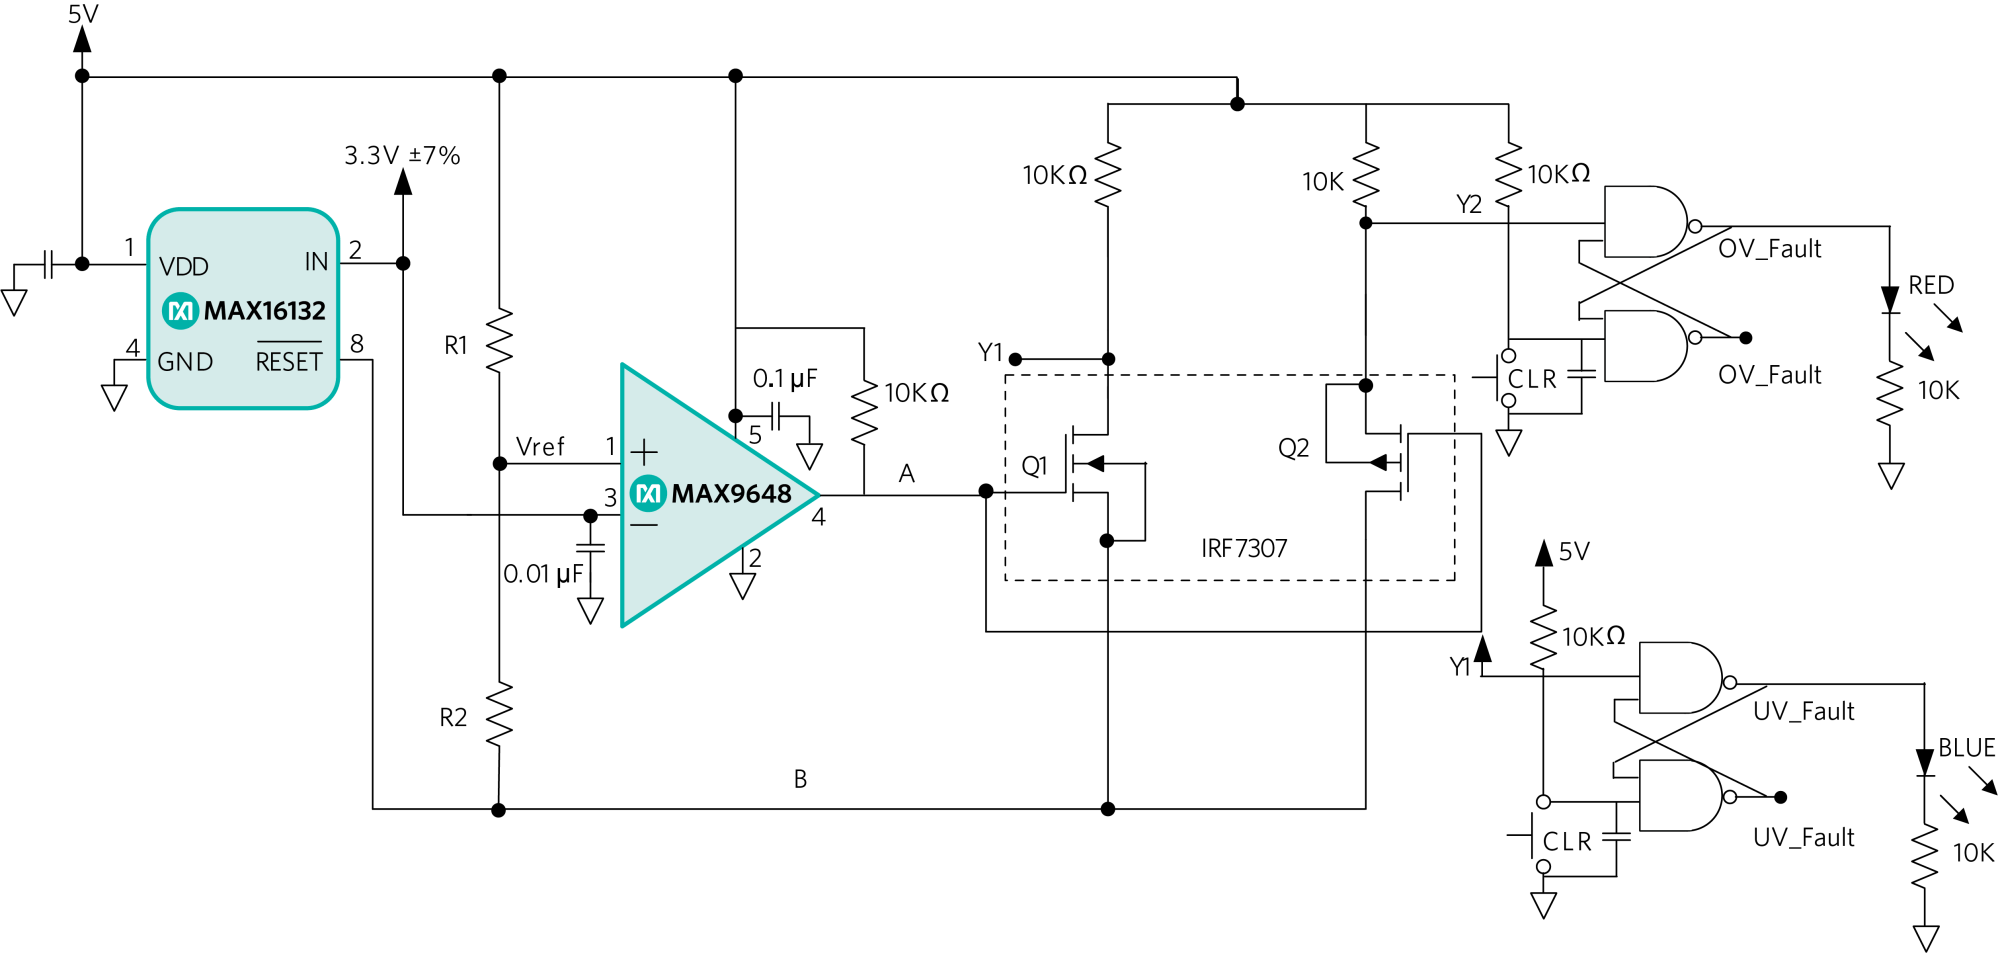 hight resolution of uv ov detection circuit with led status latched using sr latch